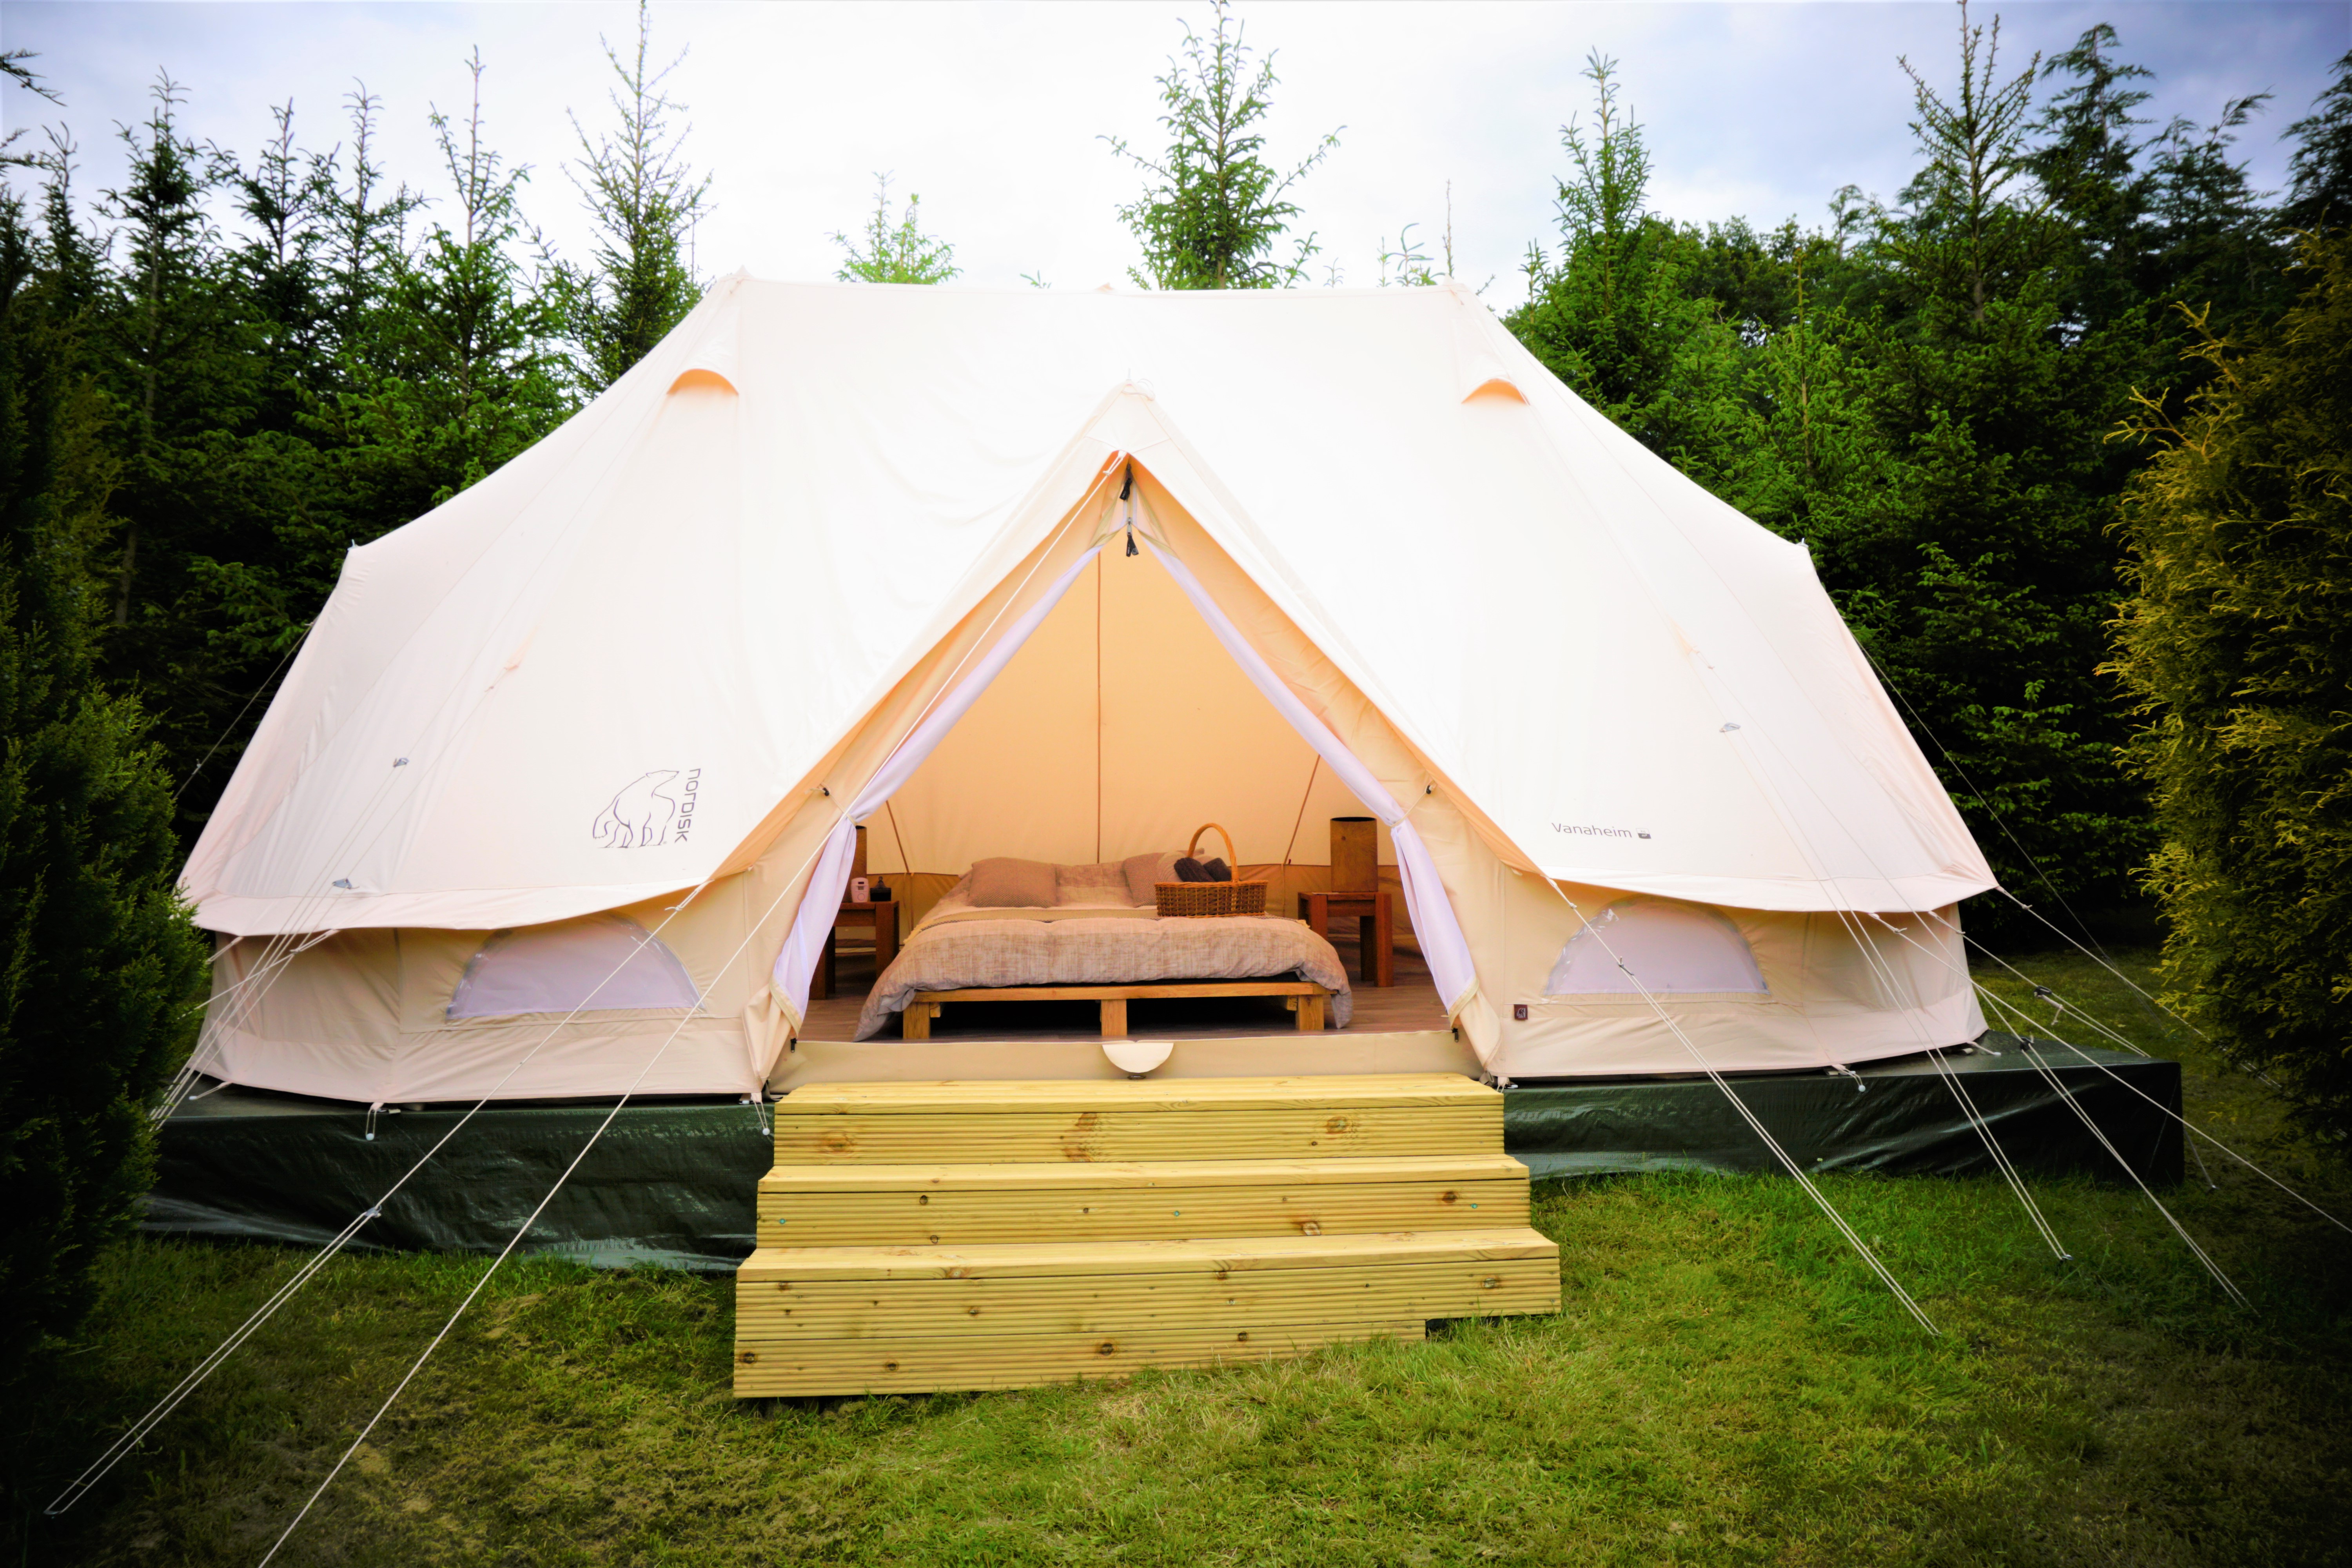 Weekend Glamping and BBQ for 4 : £130pp